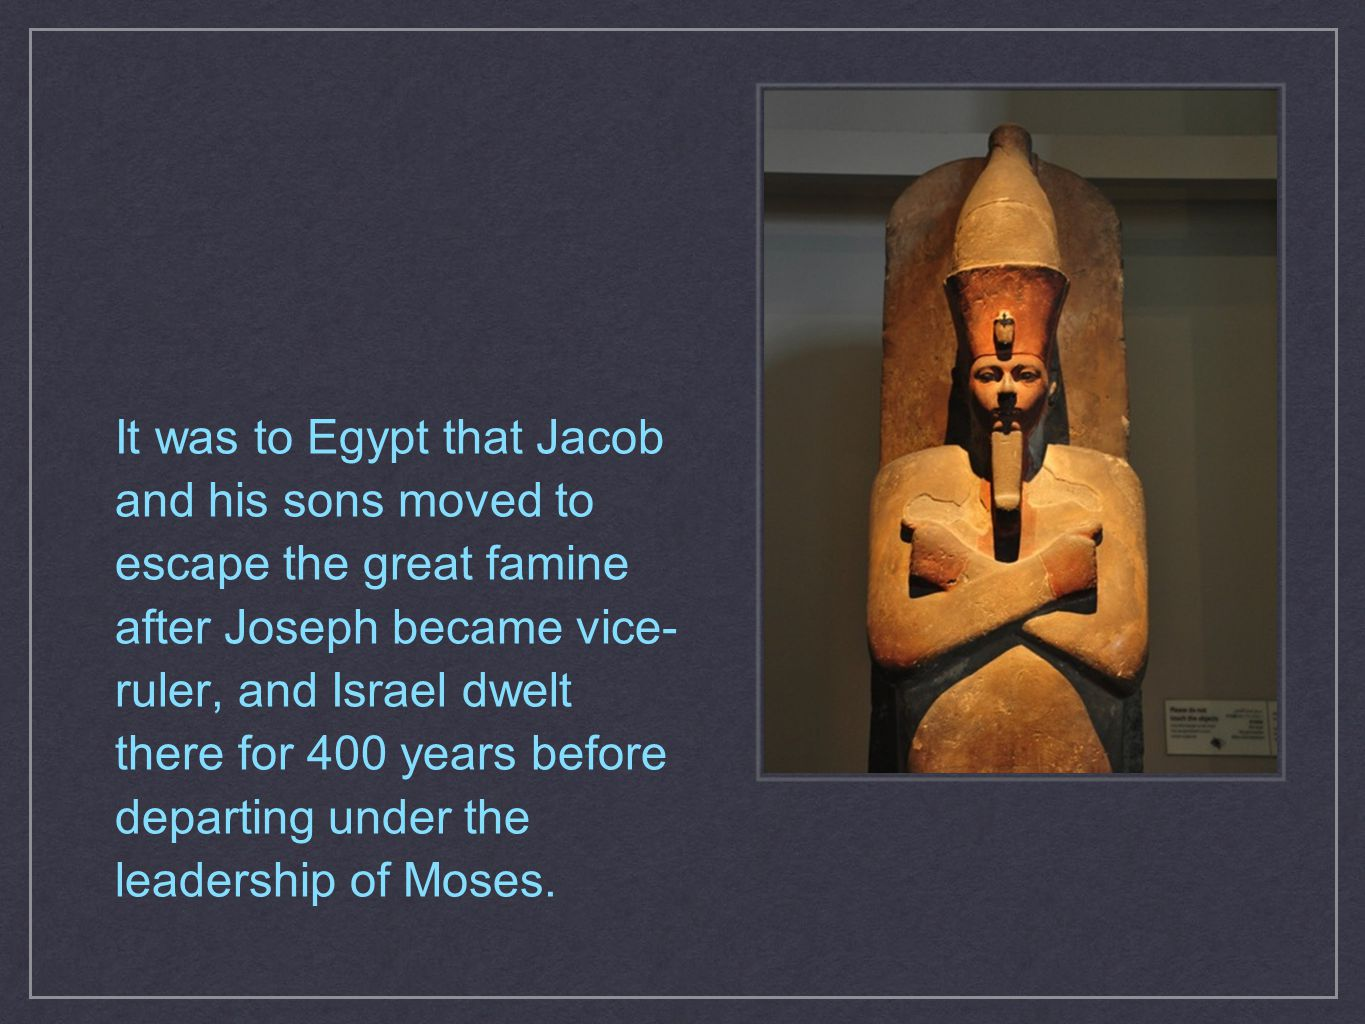 Some say the pharaoh of the Exodus was Amenophis II (also called Amenhotep).